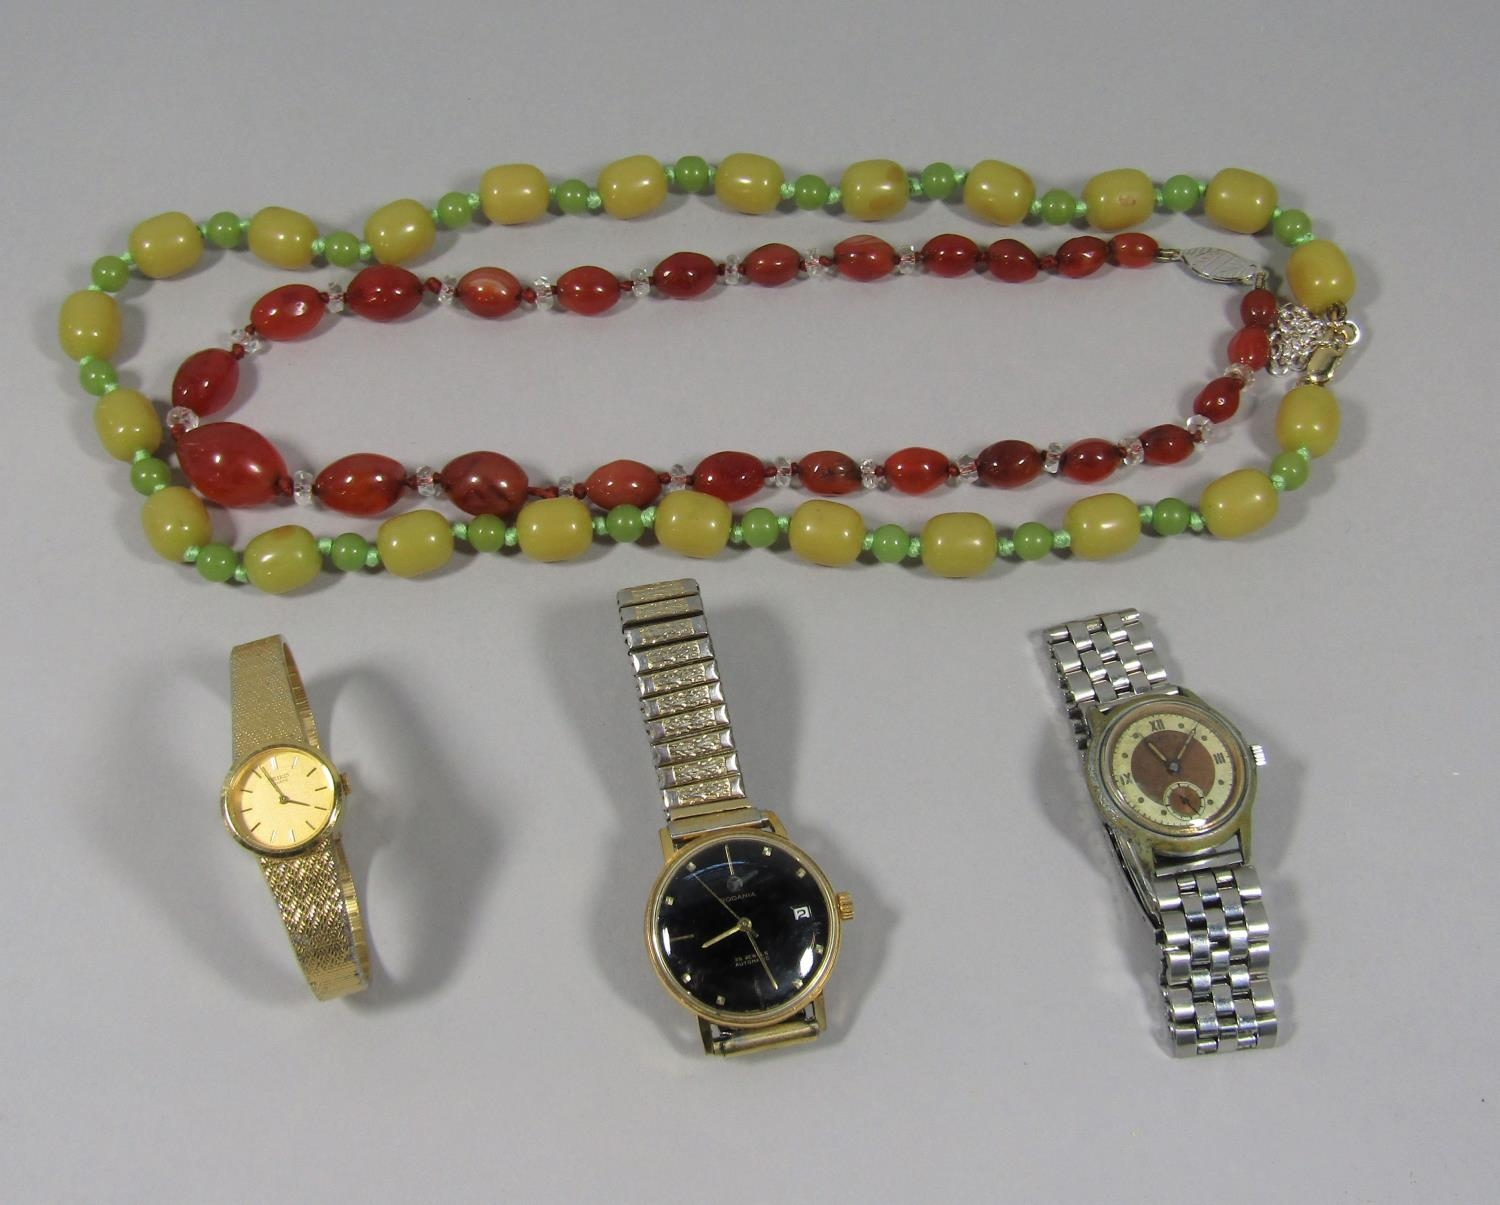 Phenolic green bead necklace with later 9ct clasp and a further graduated carnelian bead necklace